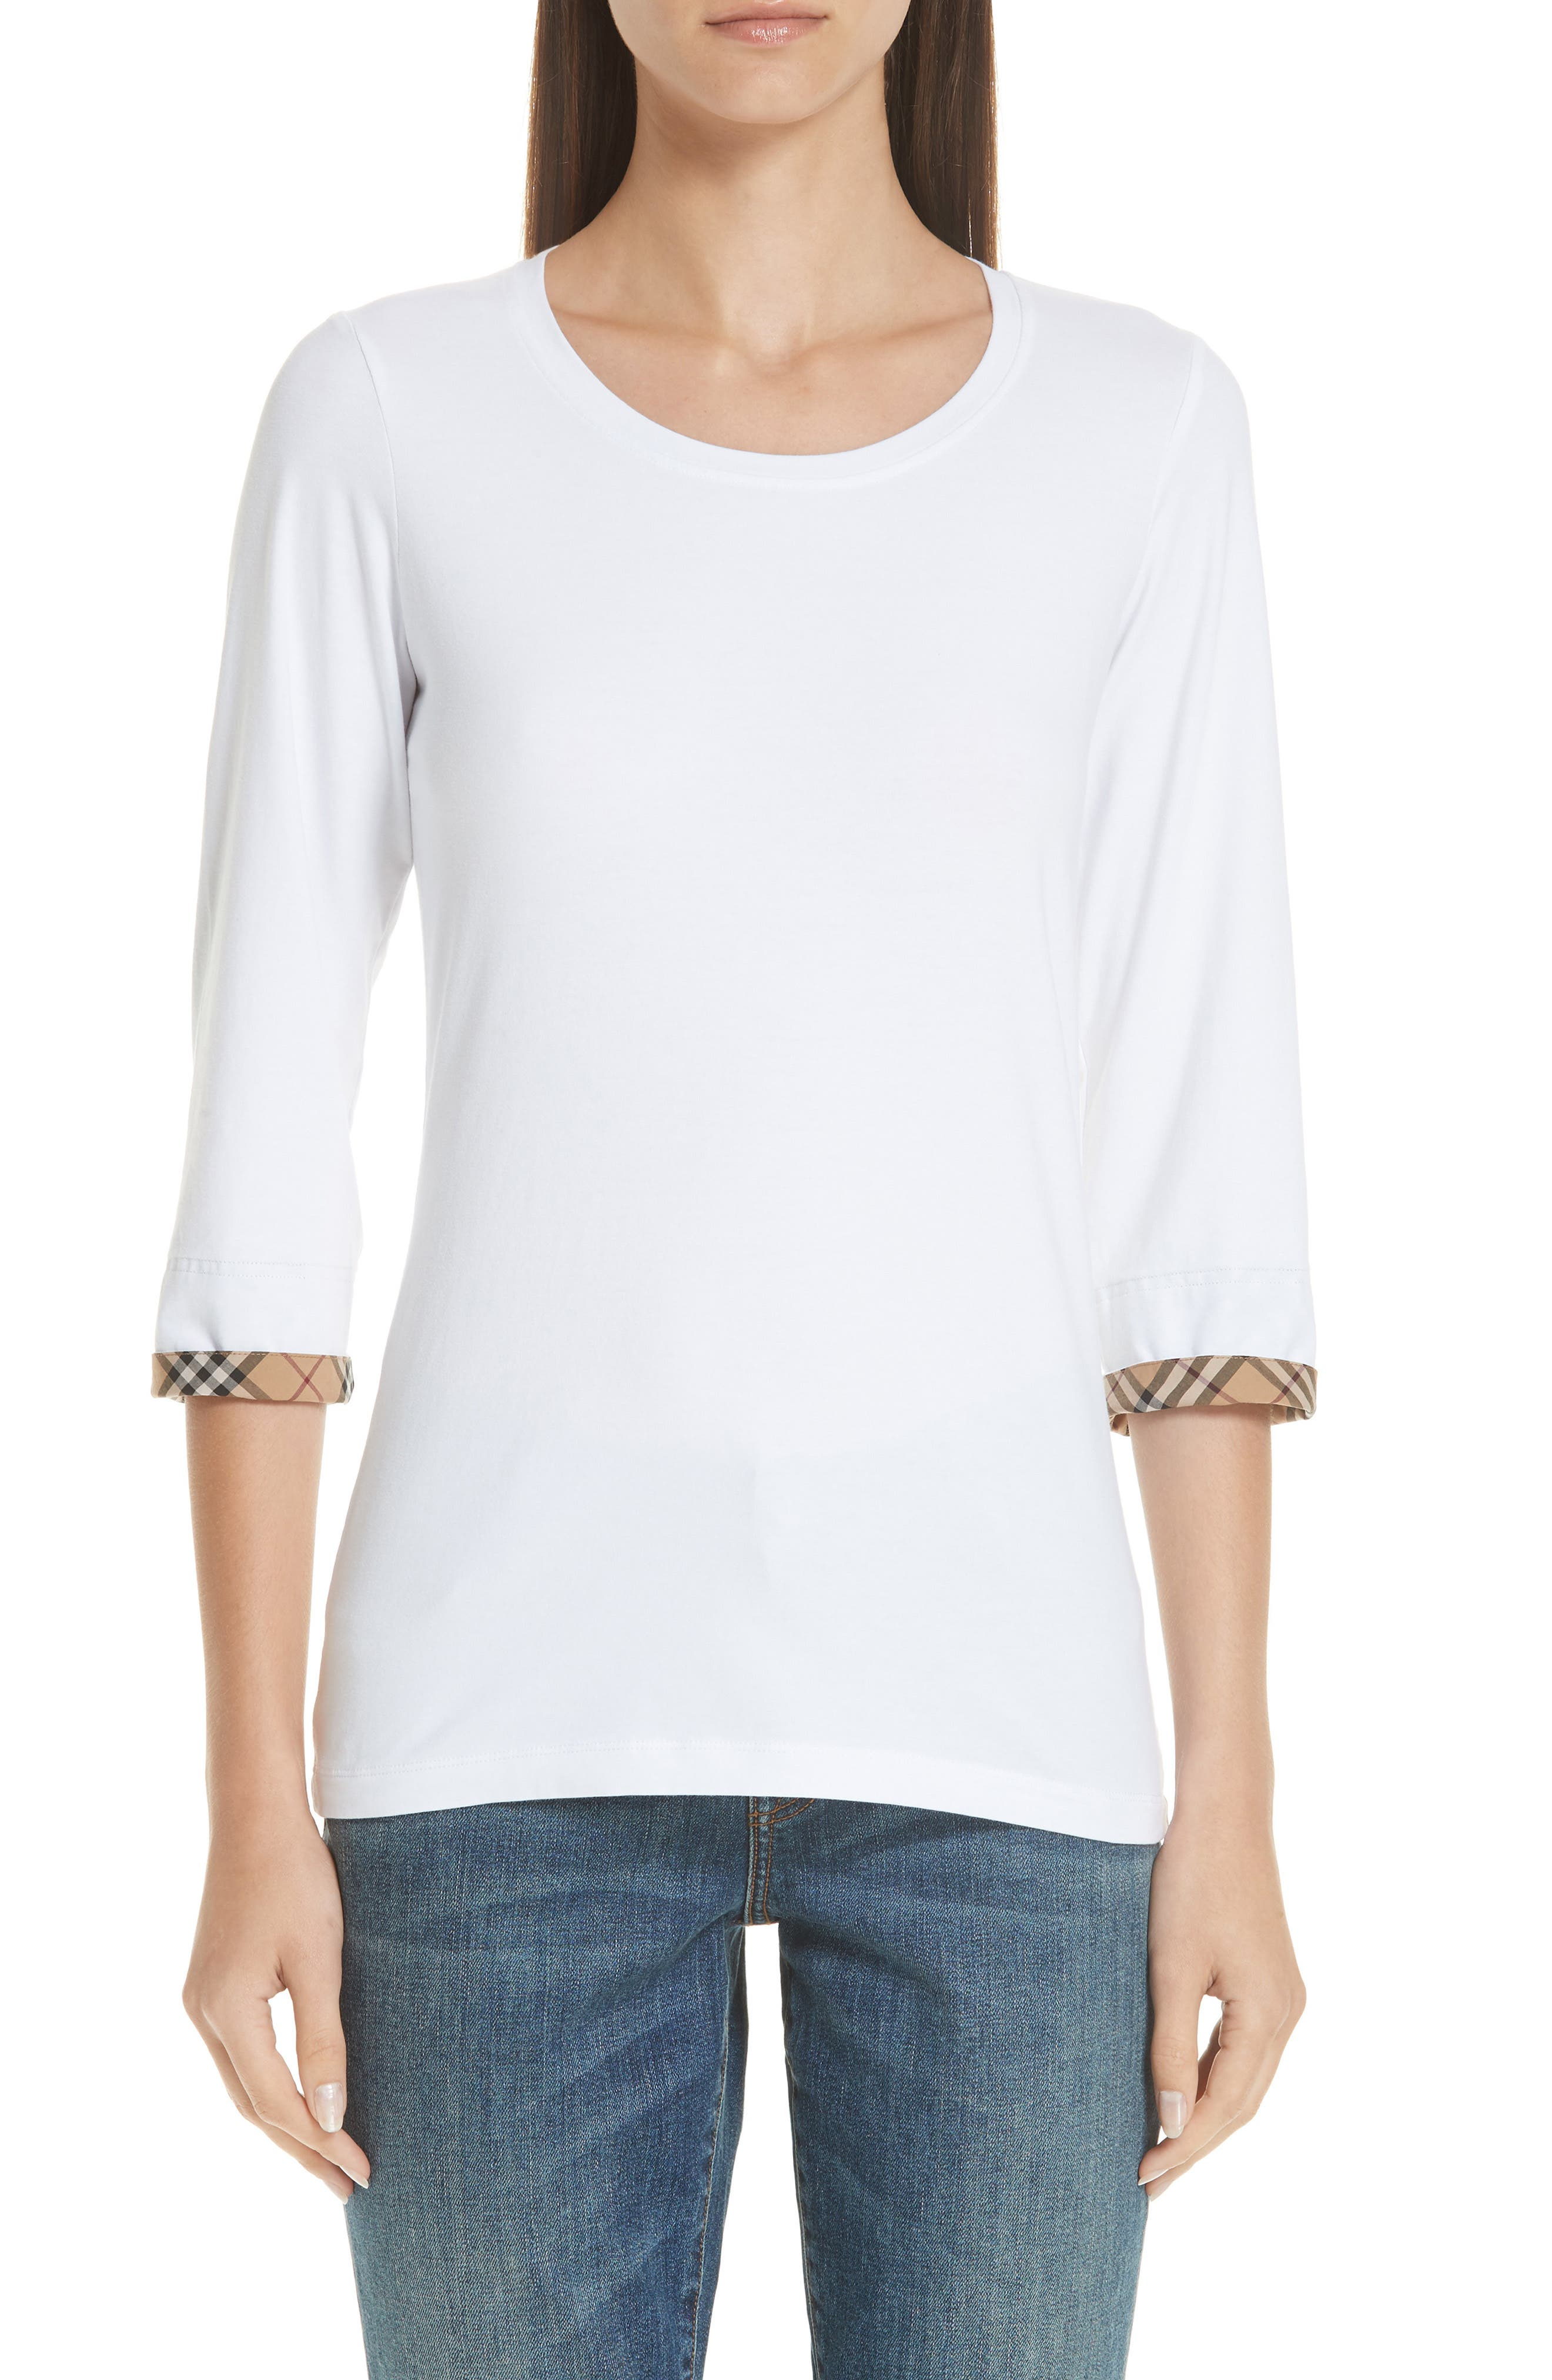 Lohit Check Cuff Stretch Cotton Tee,                             Main thumbnail 1, color,                             100